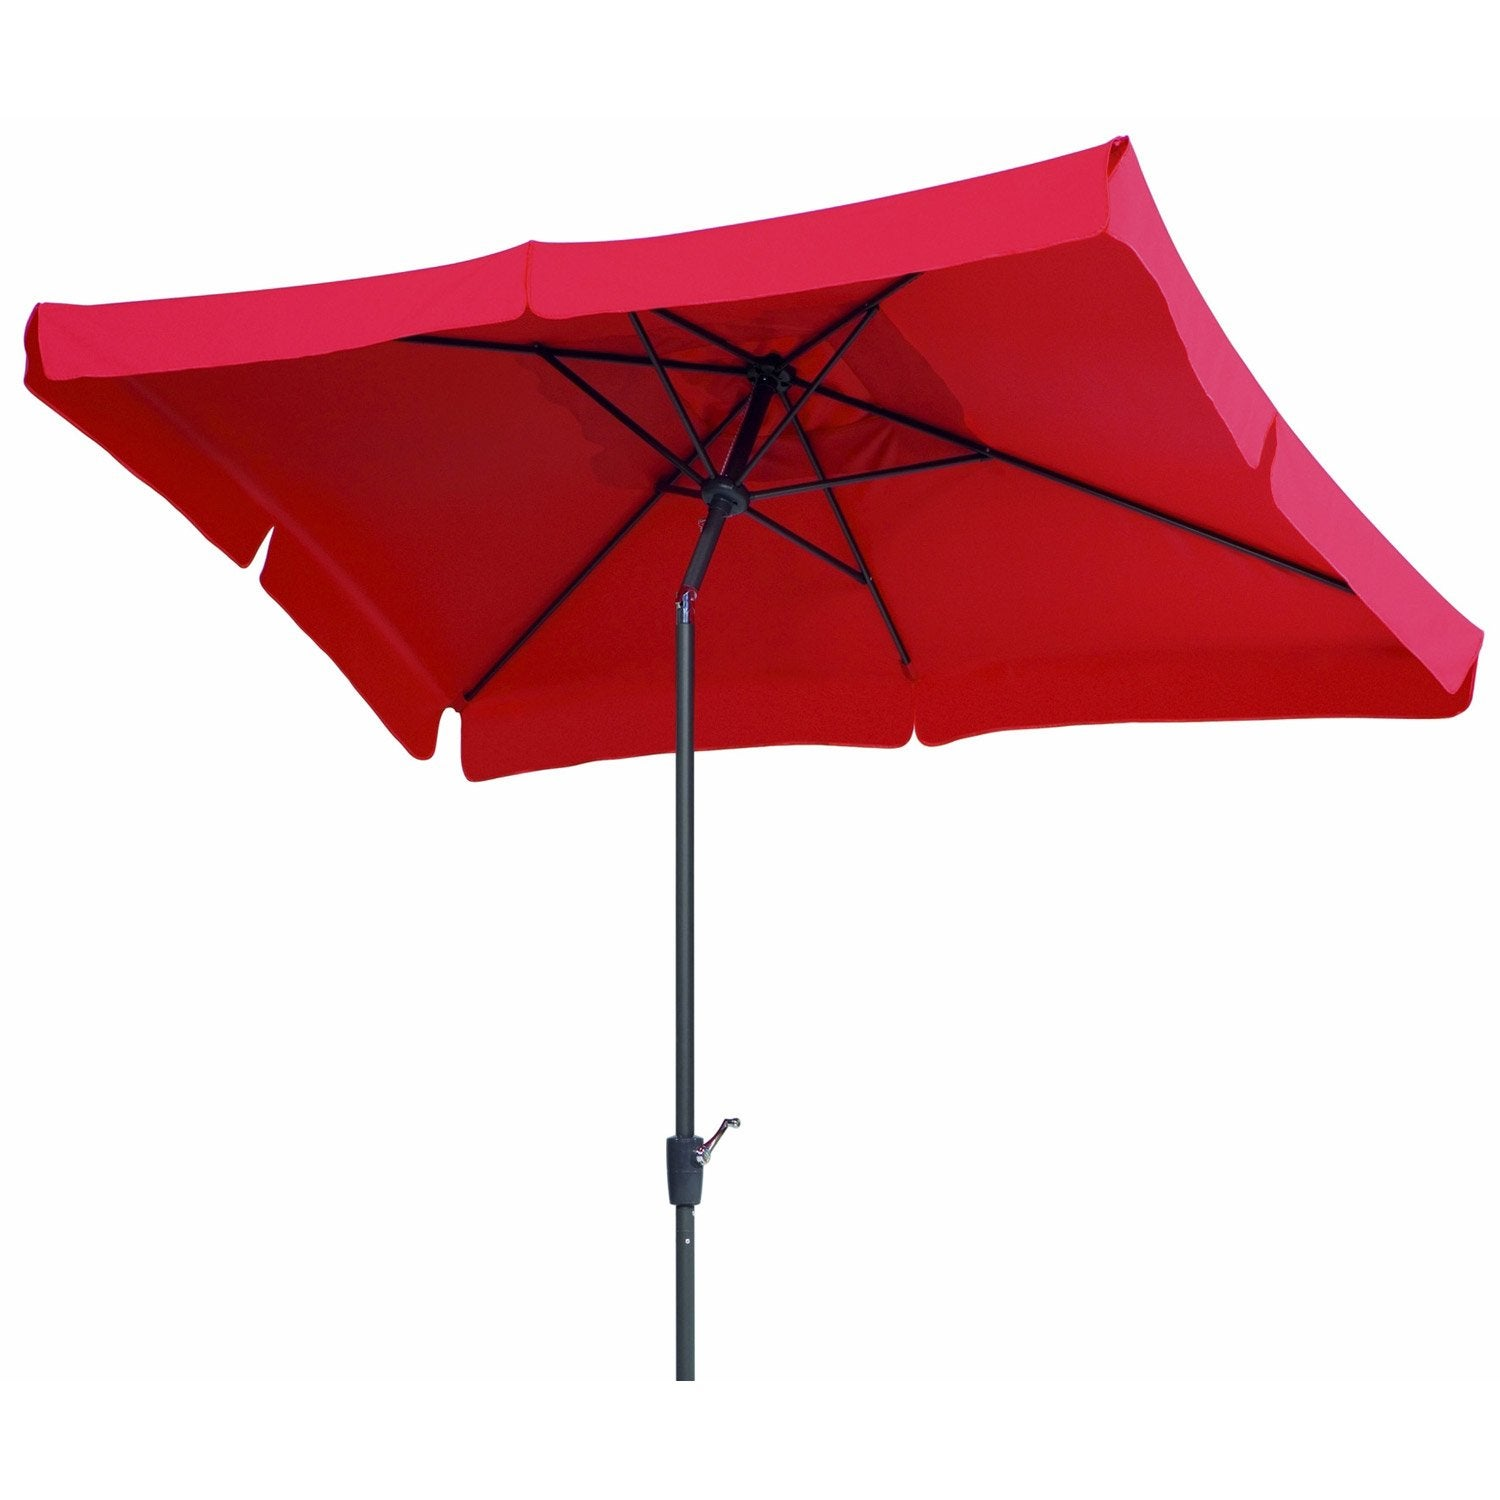 Parasols rectangulaires pour balcons fashion designs - Housse de parasol deporte leroy merlin ...